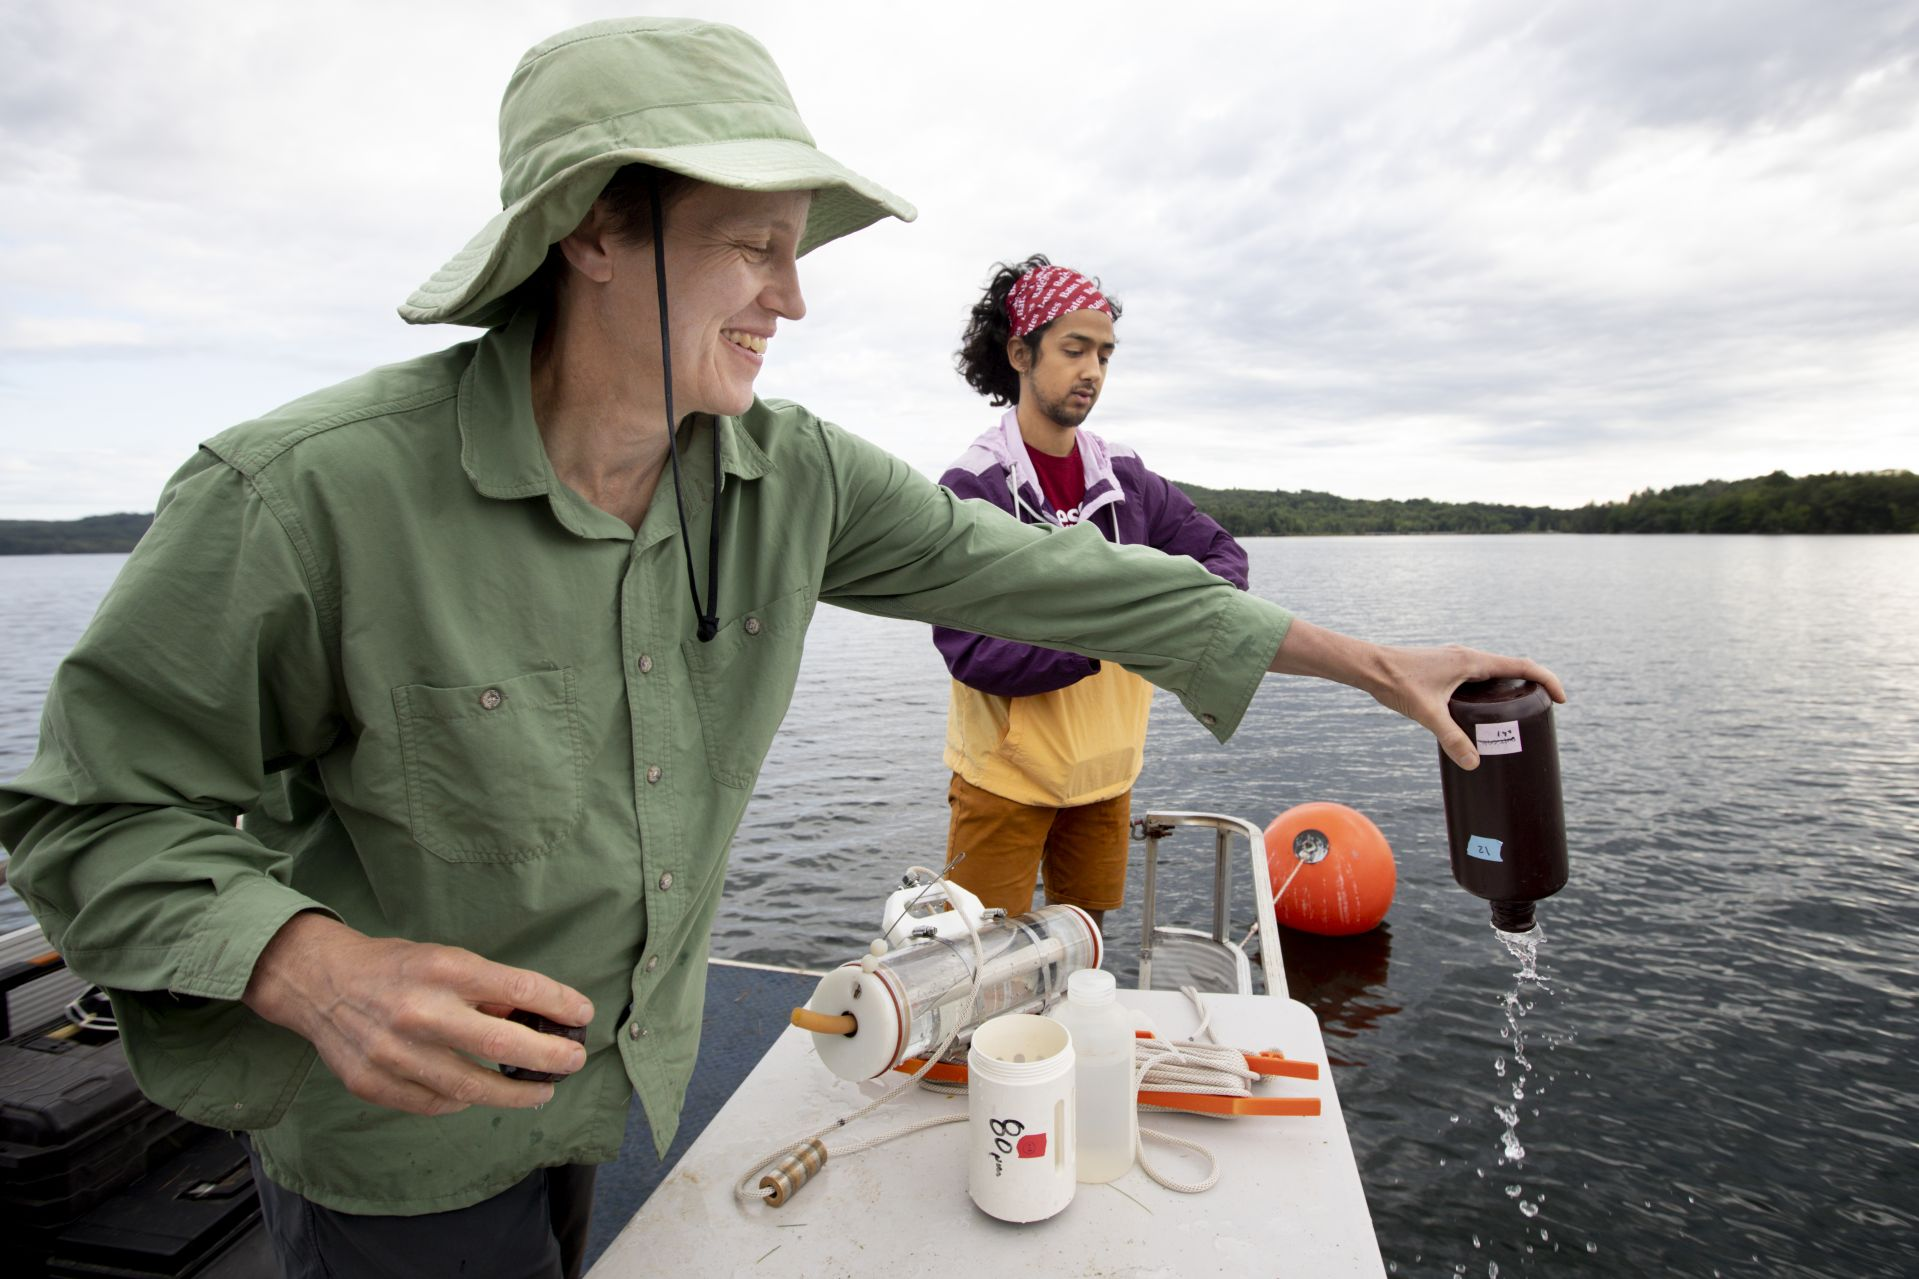 Professor of Environmental Studies Holly Ewing (left) and environmental studies major Christopher Castaneda '20 take water samples from Lake Auburn on Aug. 15, 2019. Ewing is central to a five-state effort, supported by a $5.9 million National Science Foundation grant, to use high technology to better predict cyanobacterial blooms in lakes. (Phyllis Graber Jensen/Bates College)